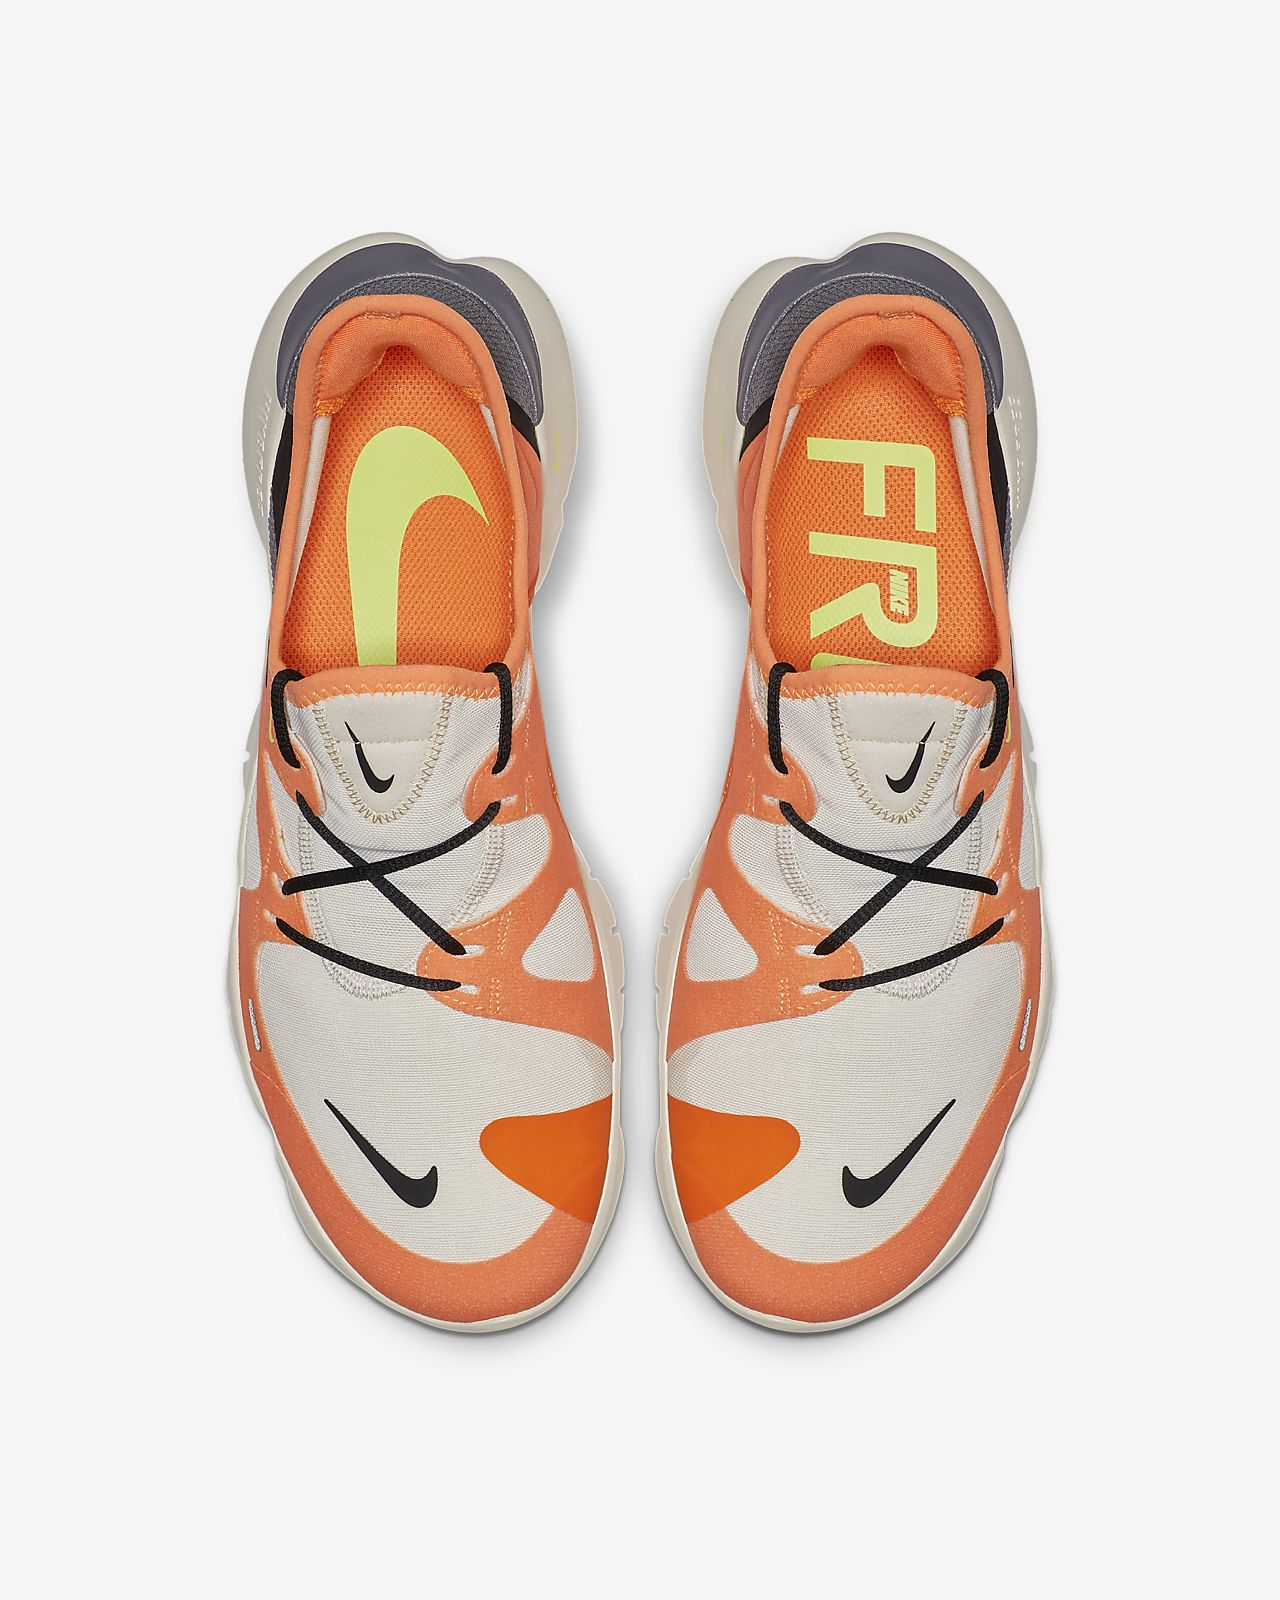 new concept ae79a 95471 ... Nike Free RN 5.0 NRG Men s Running Shoe